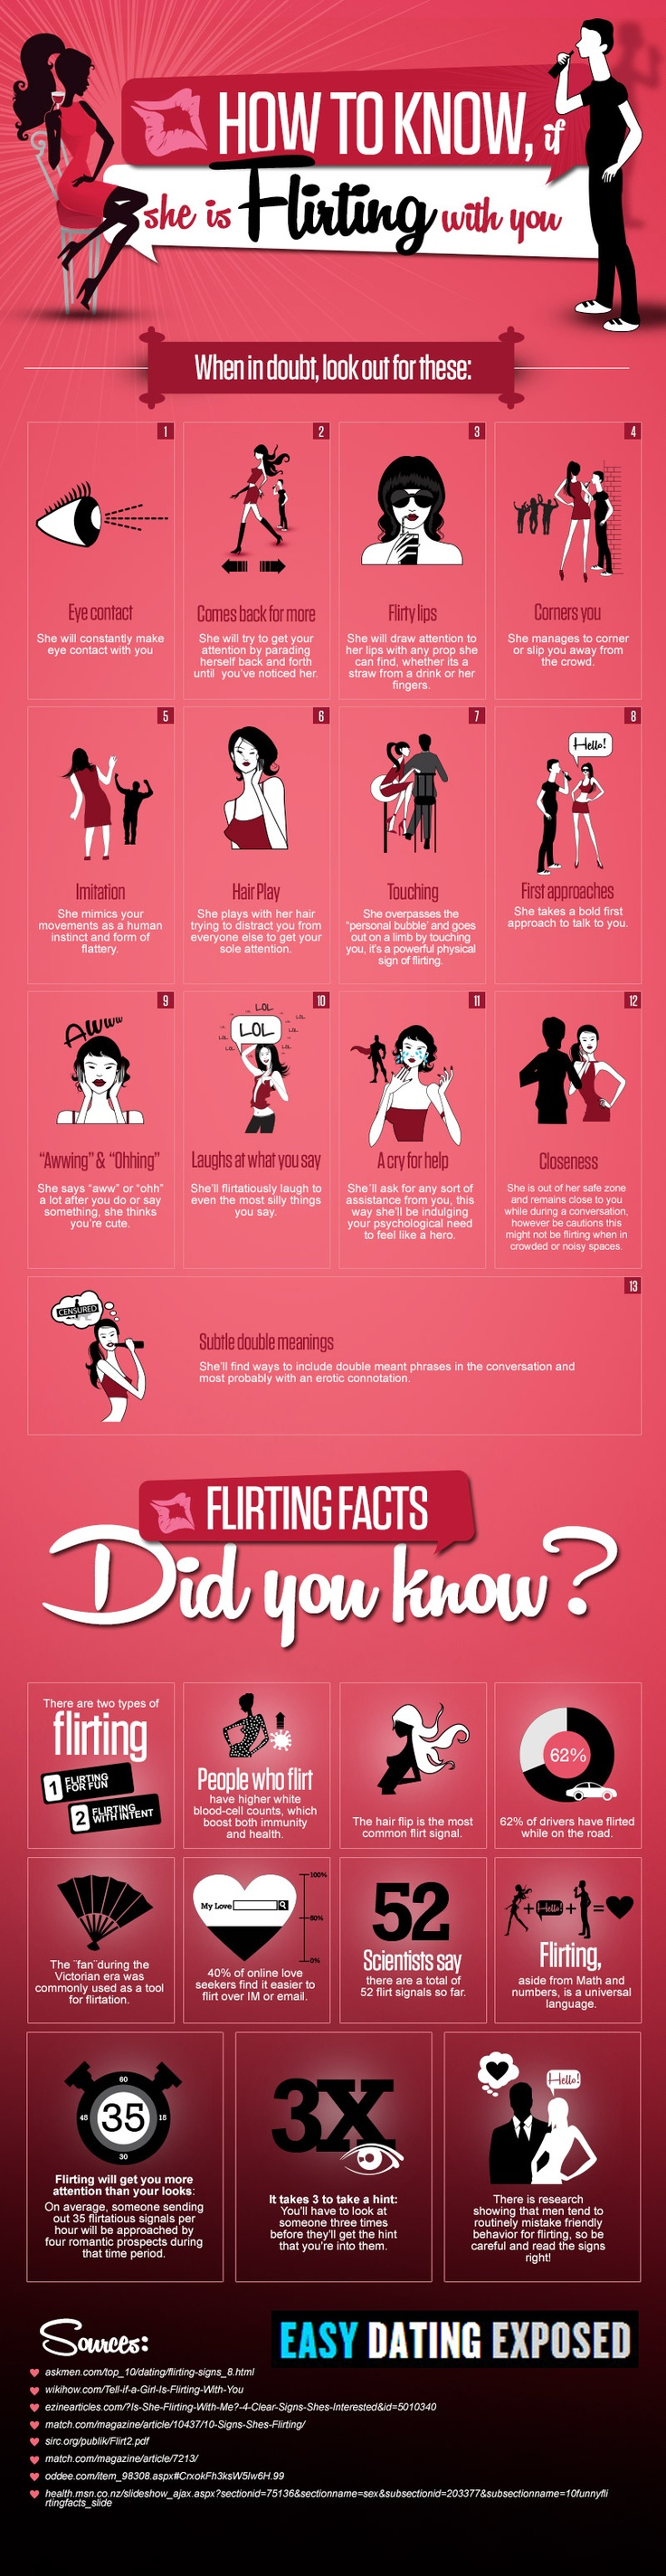 How to know if she flirting with you...?